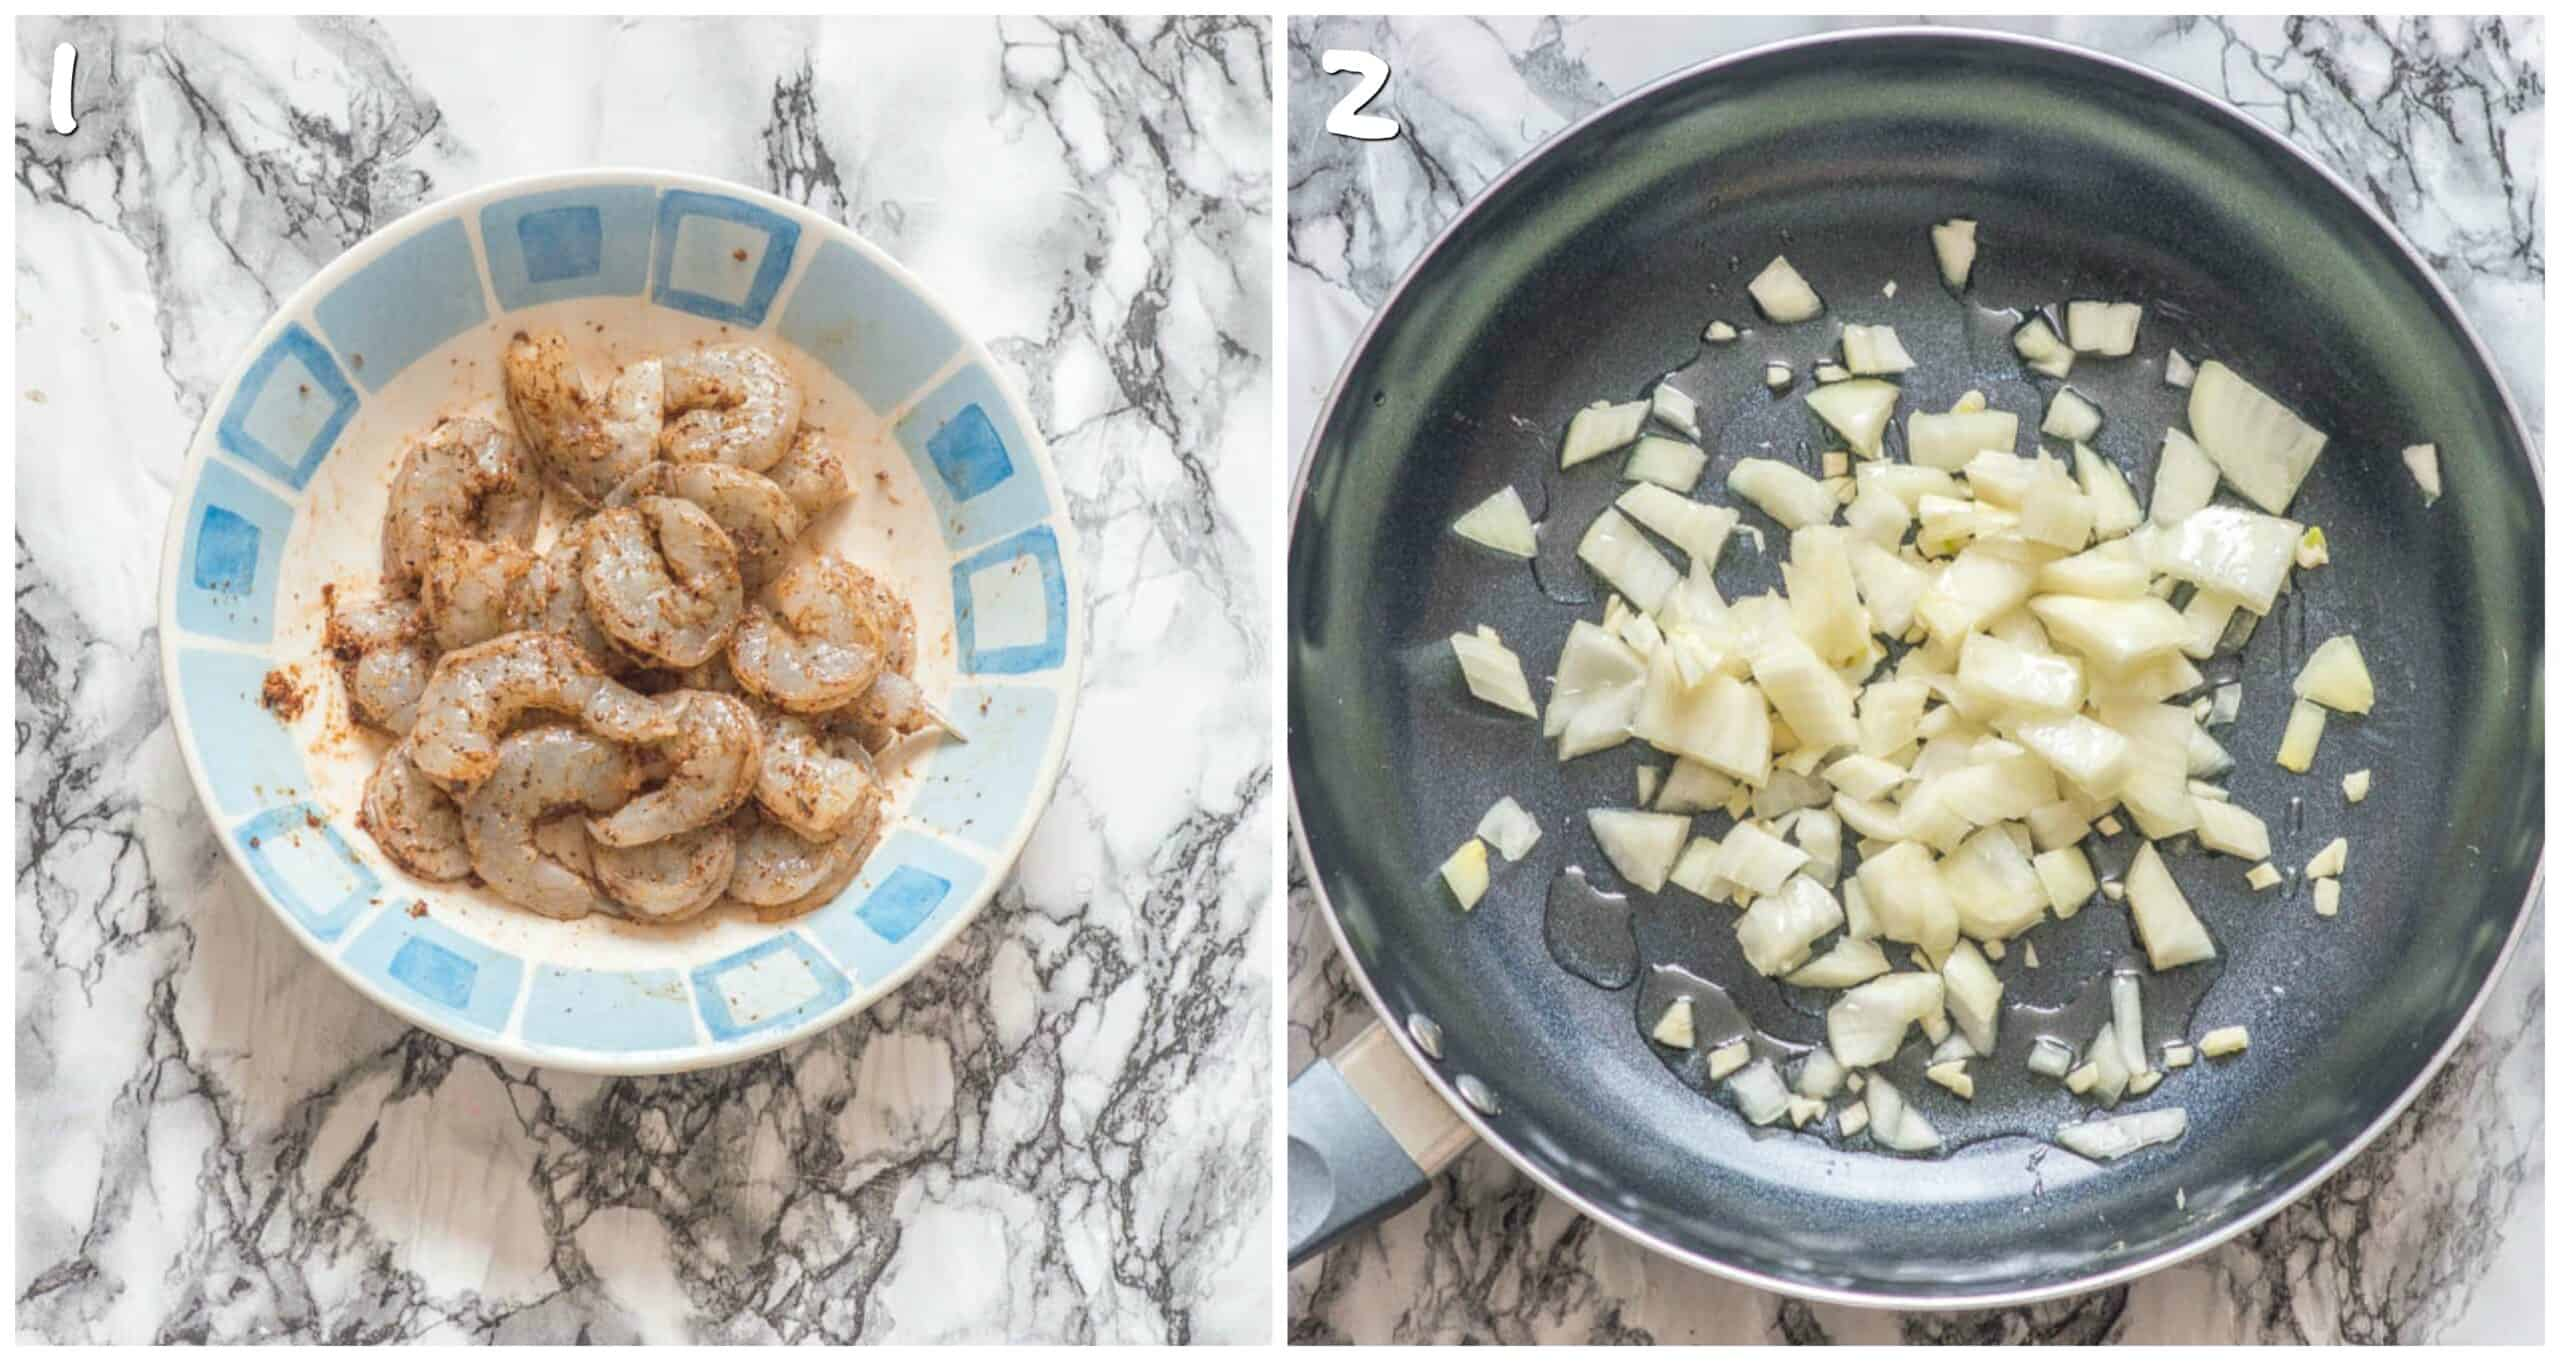 steps 1-2 marinating shrimp and sauteing onions and garlic